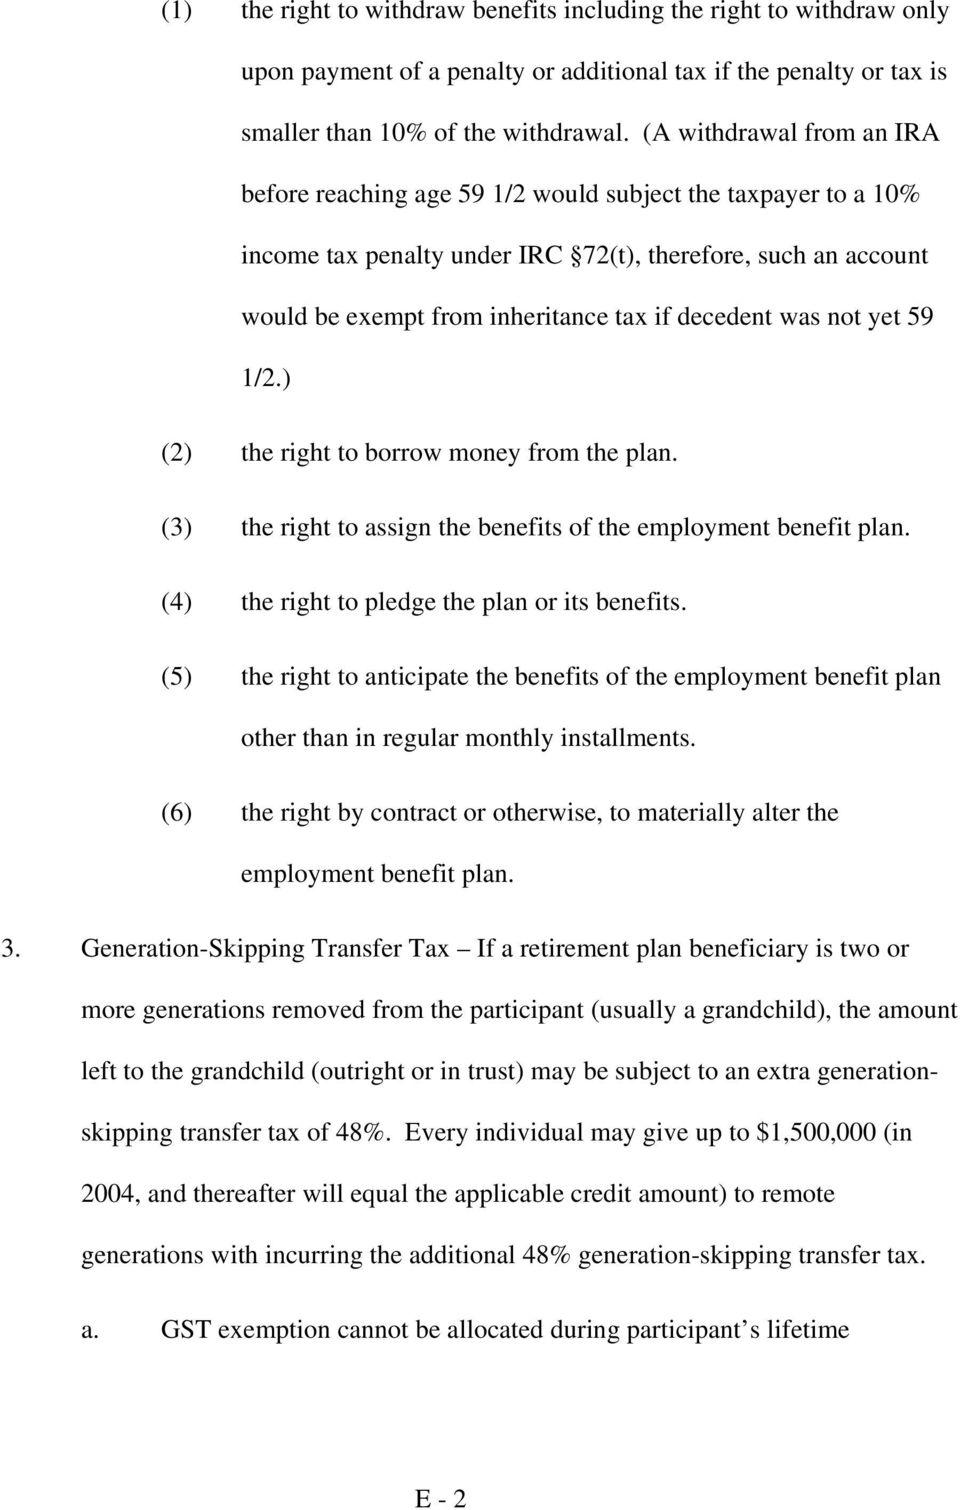 decedent was not yet 59 1/2.) (2) the right to borrow money from the plan. (3) the right to assign the benefits of the employment benefit plan. (4) the right to pledge the plan or its benefits.